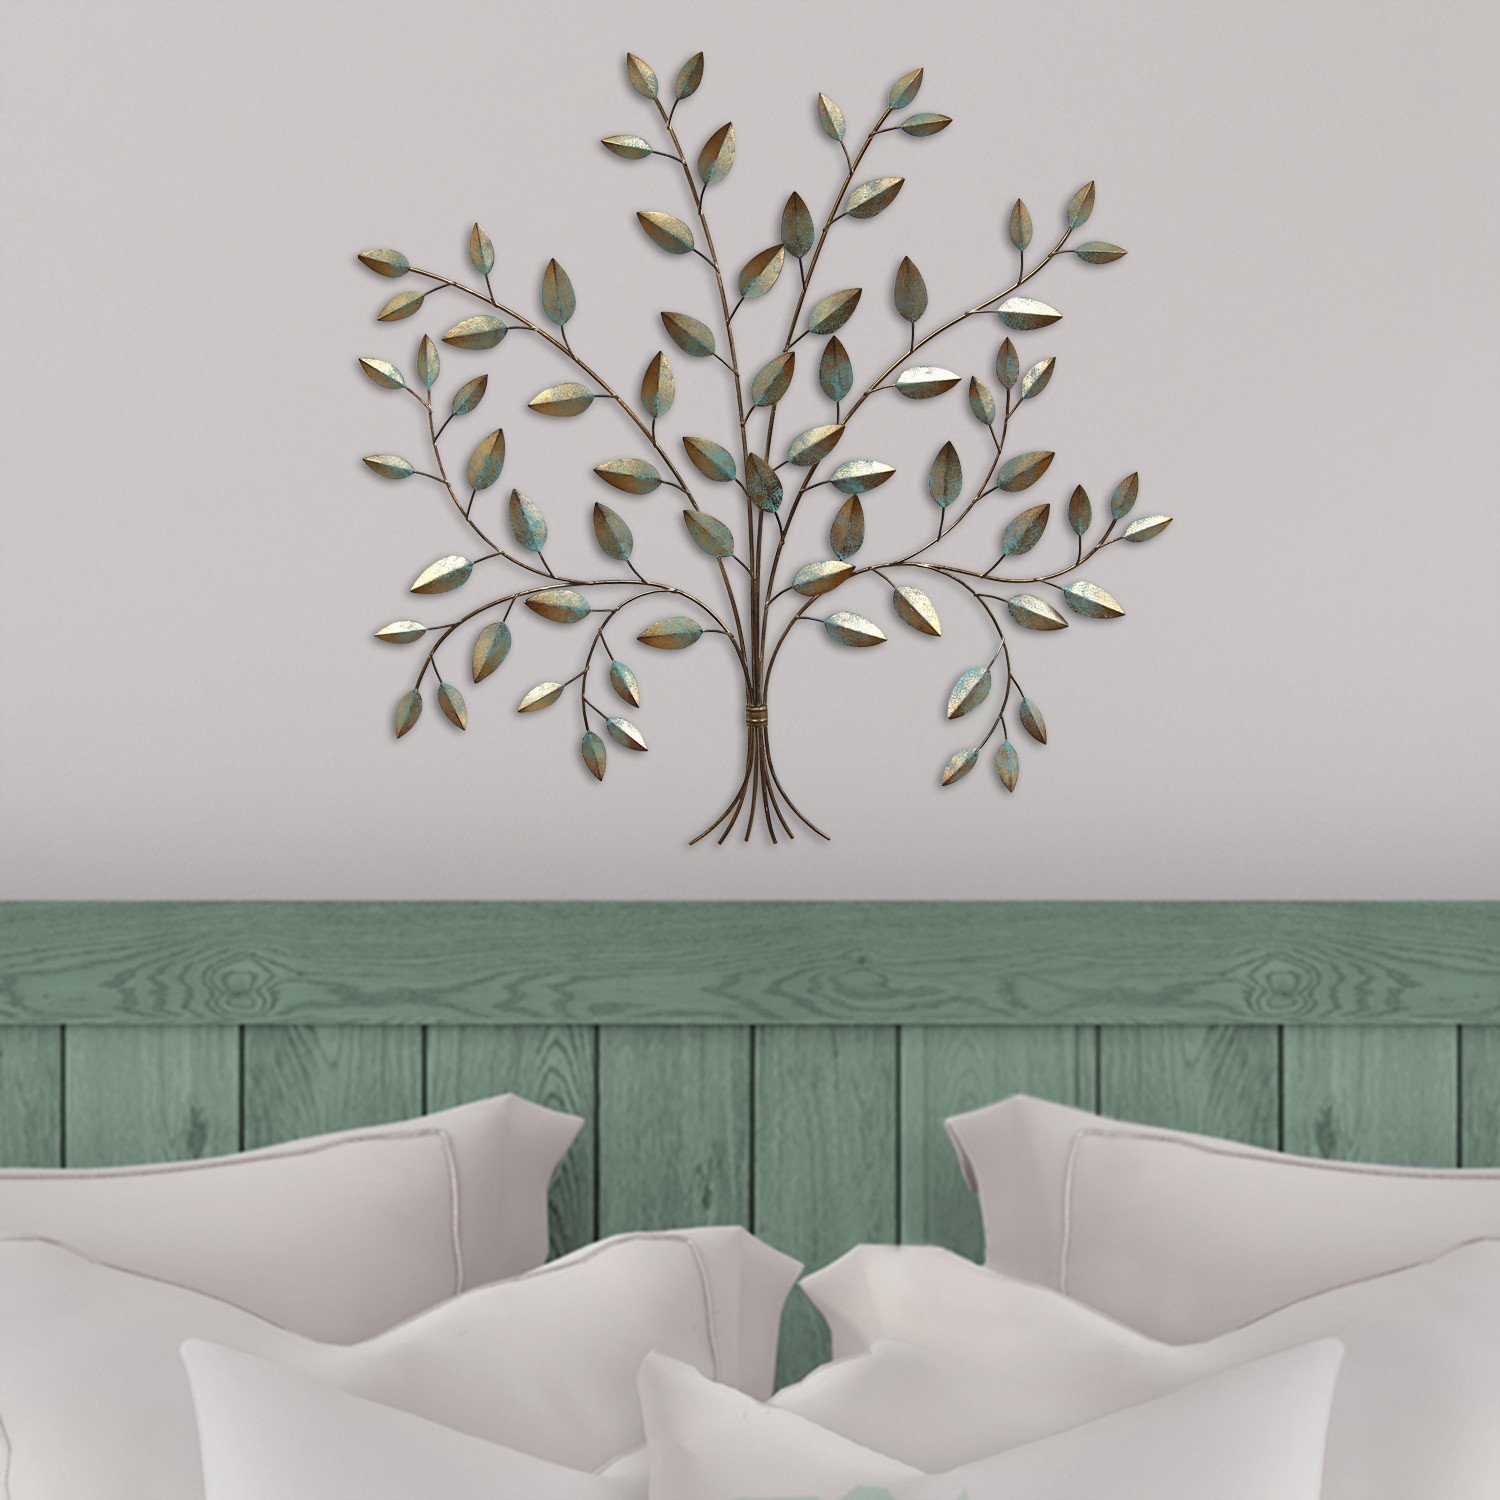 Metal Tree Of Life Wall Decor | Wayfair In Tree Of Life Wall Decor By Red Barrel Studio (View 4 of 30)